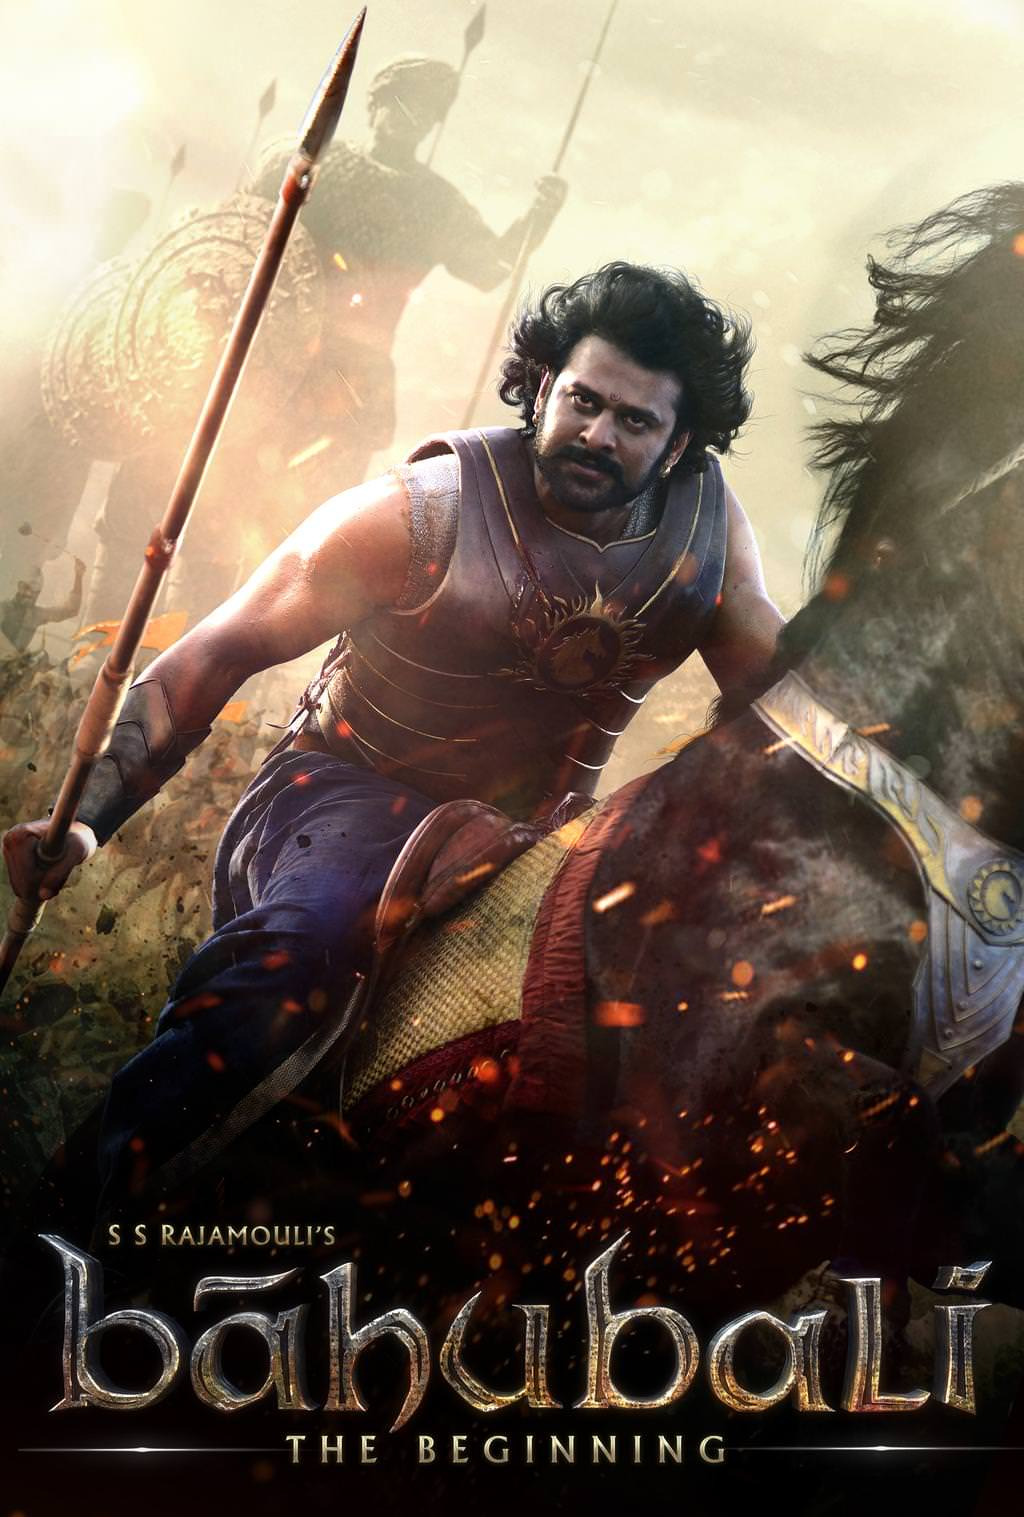 Baahubali Movie New HD Posters and Wallpapers | MovieNewz.in